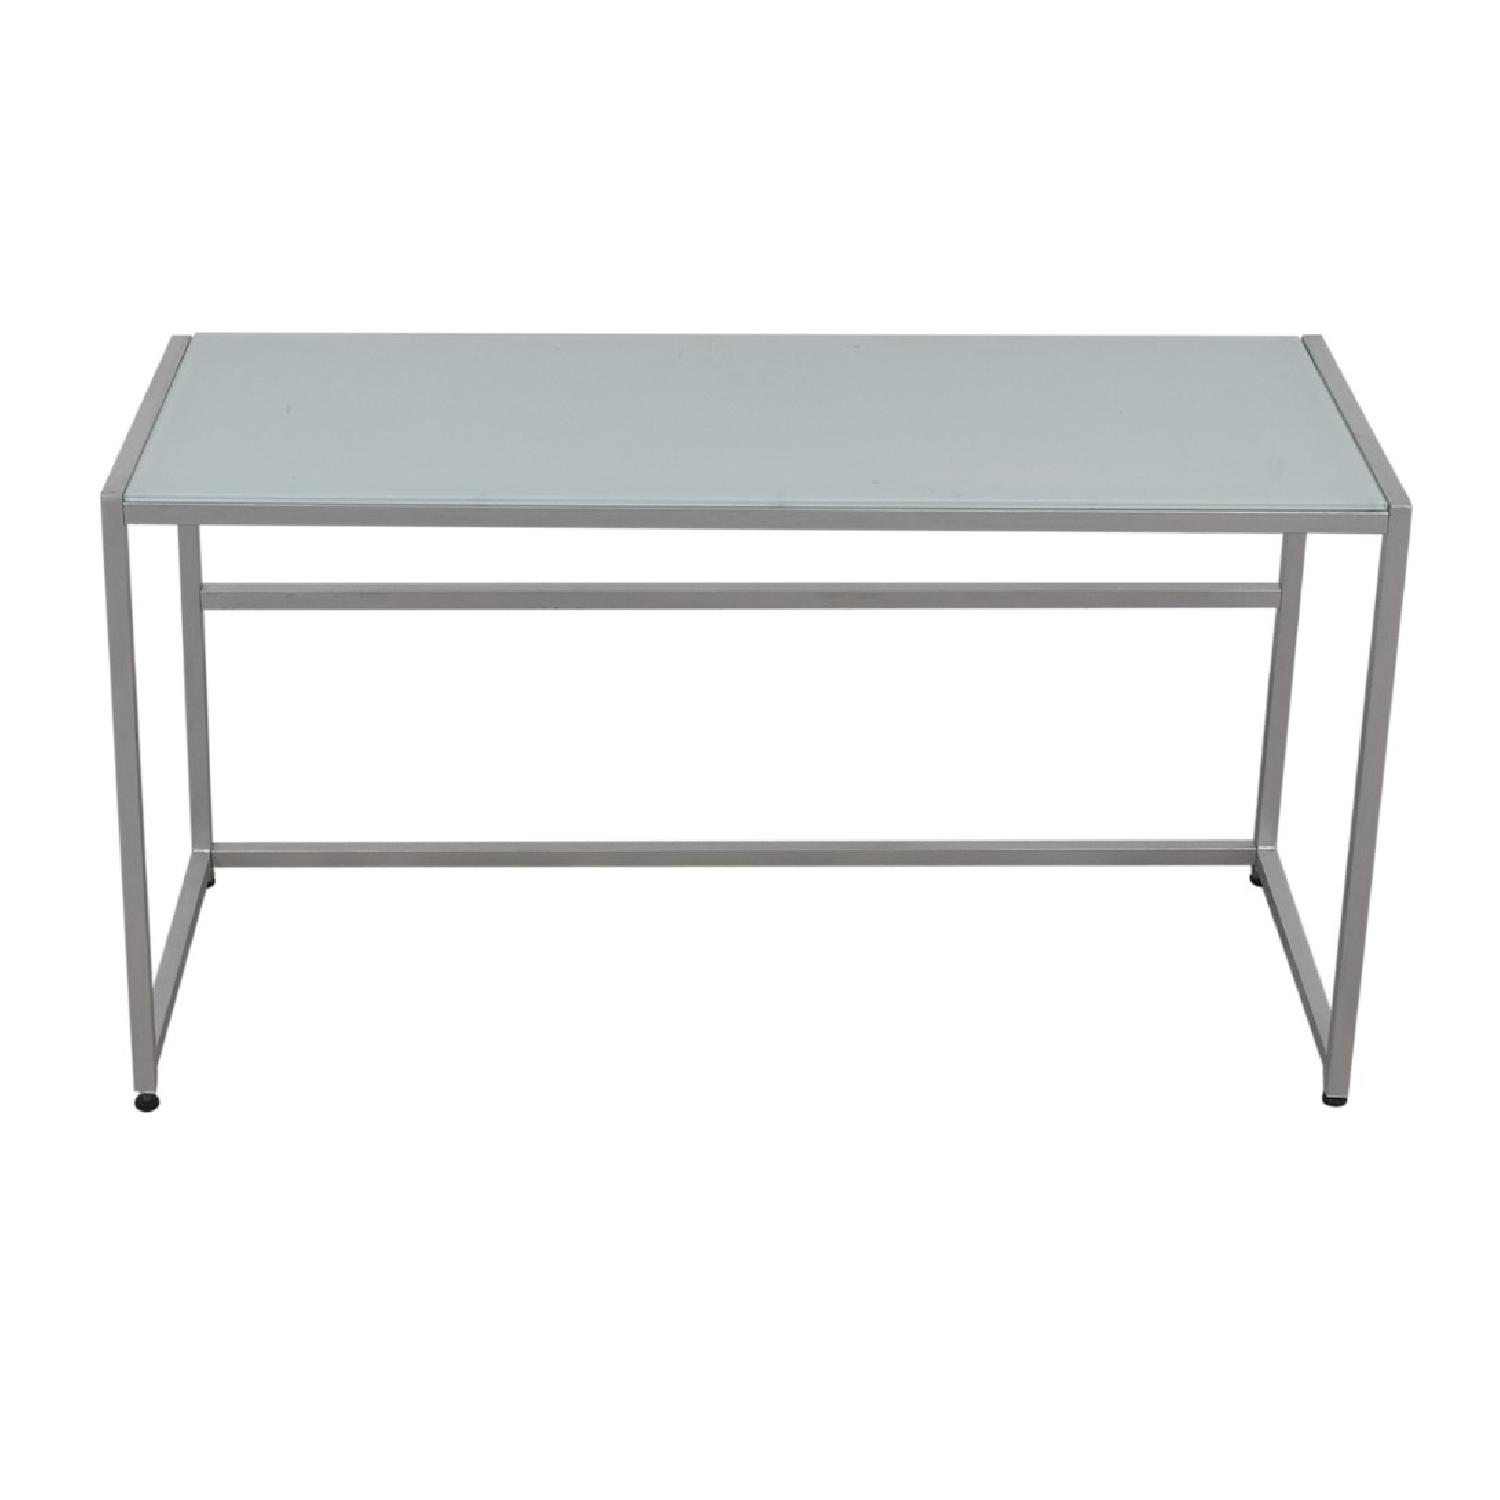 CB2 Trig Frosted Glass Desk/Console Table - image-2